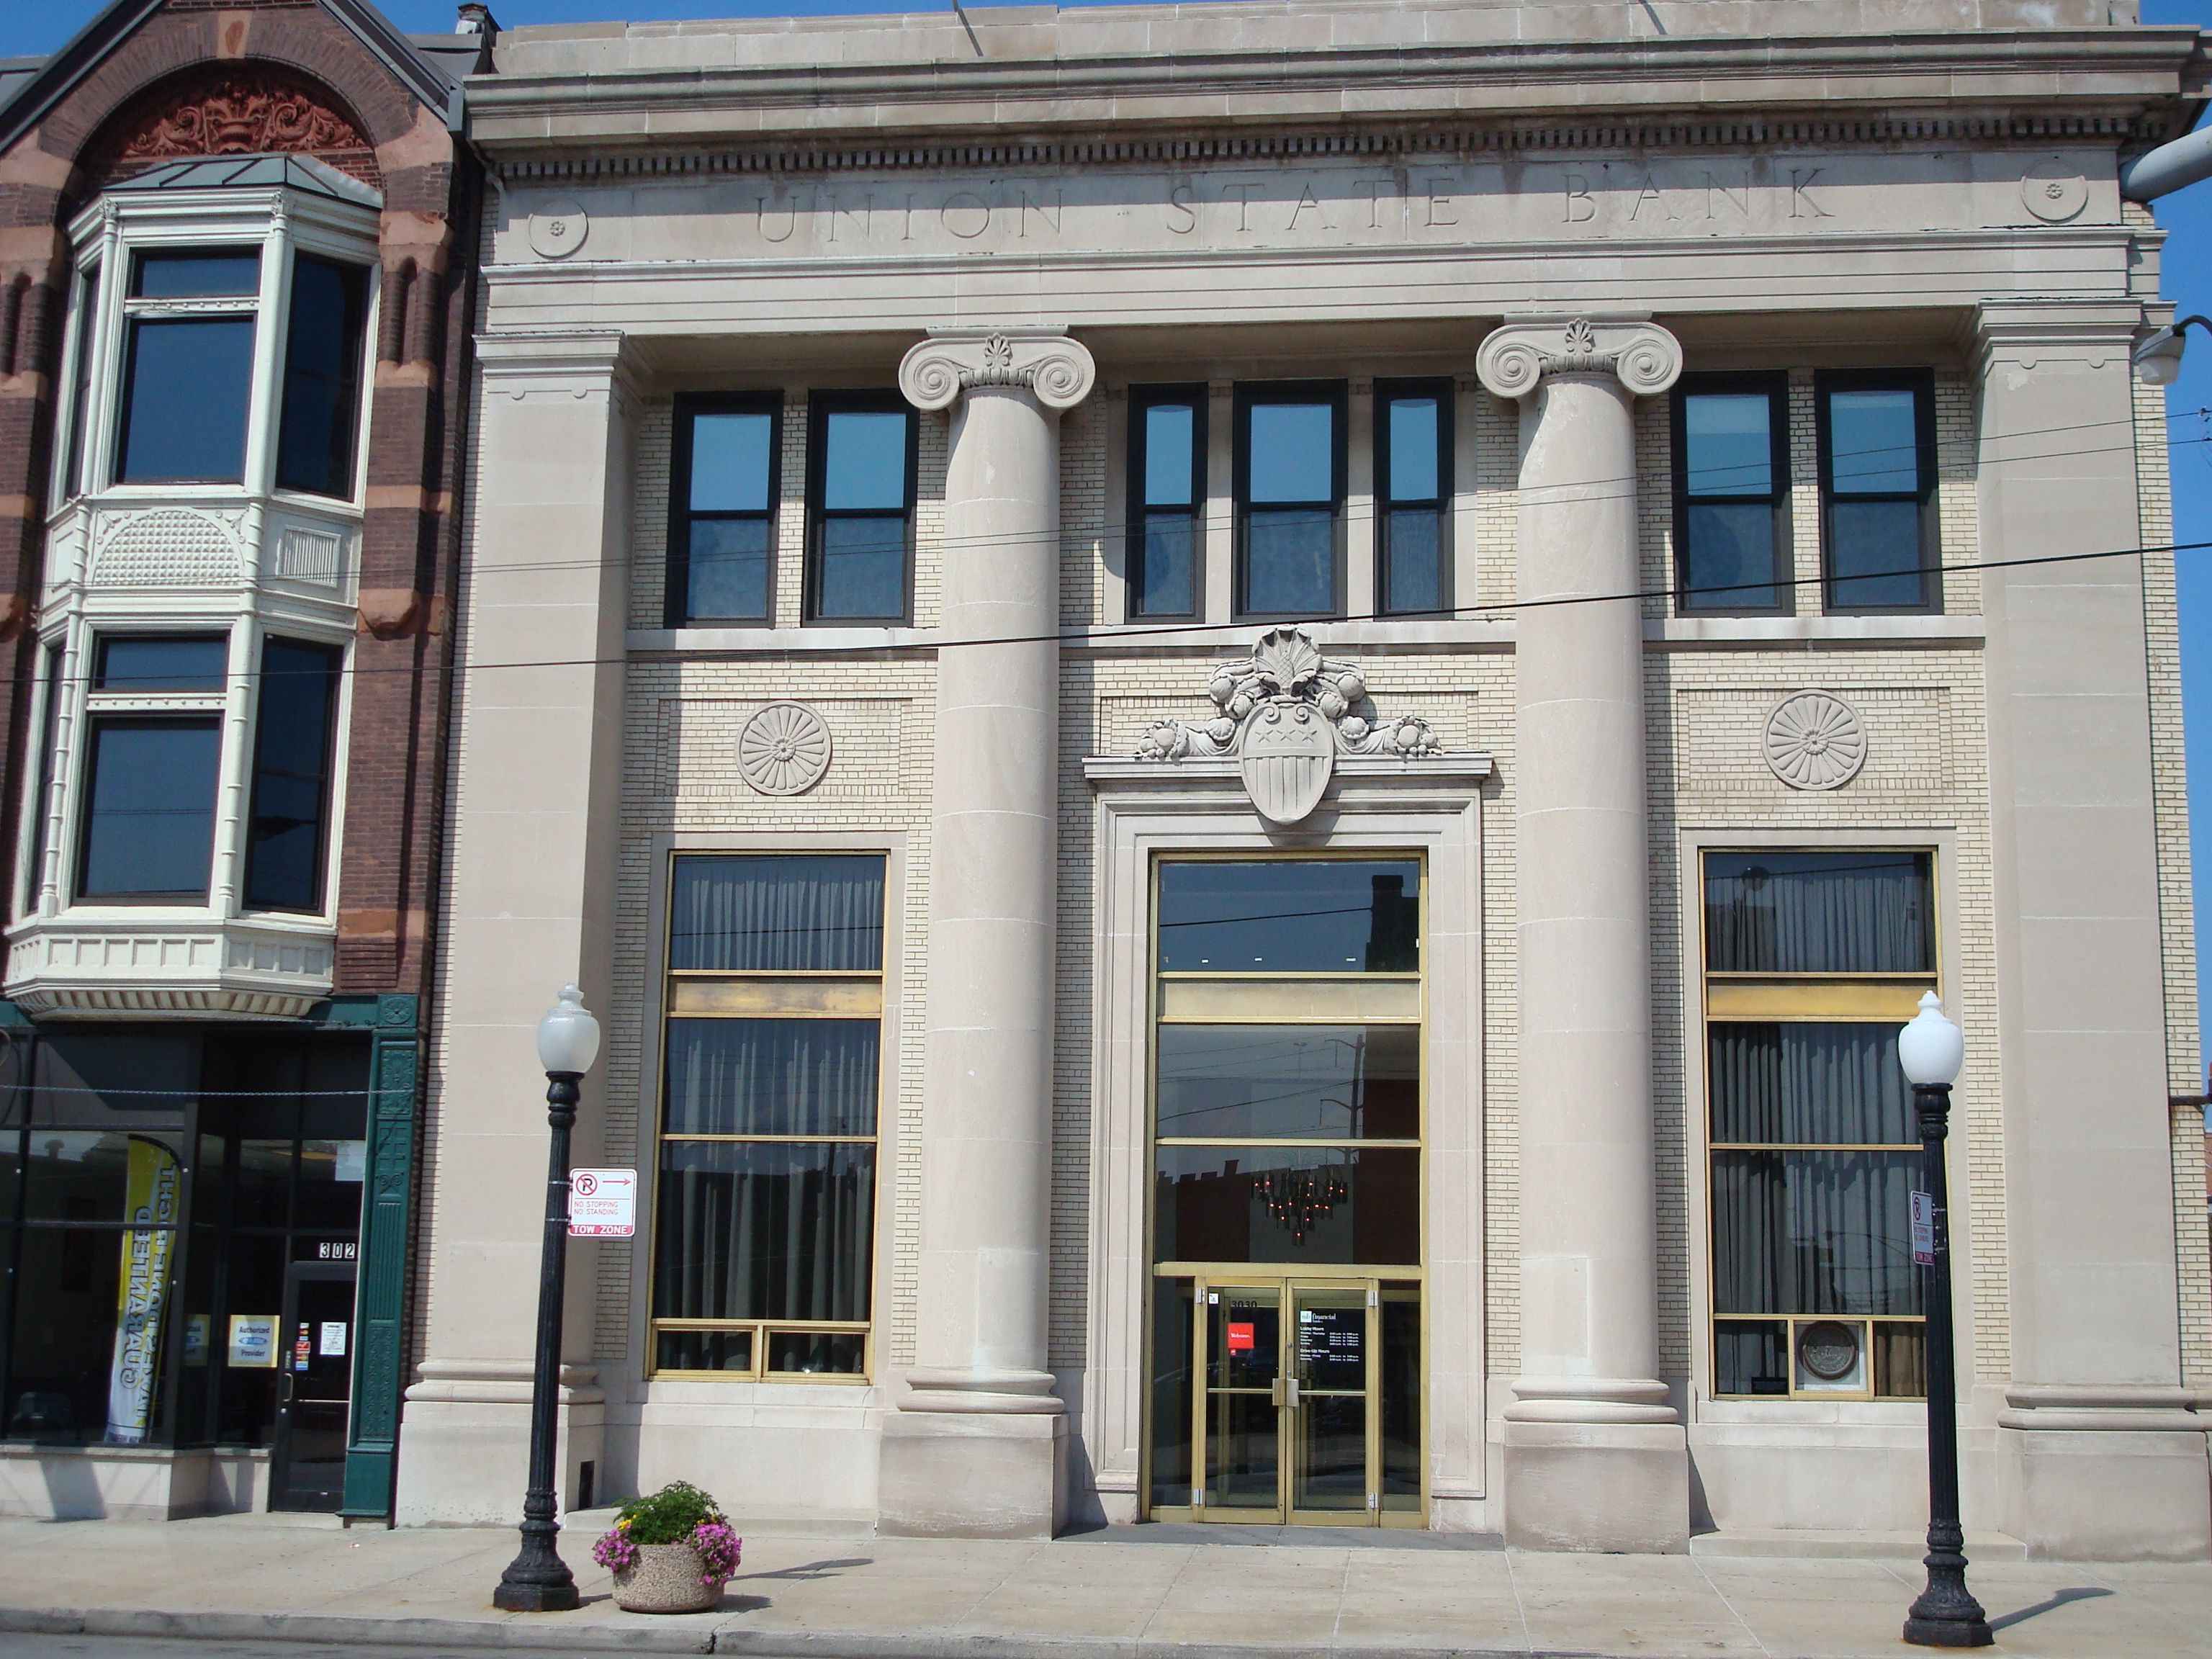 Mb Bank In South Chicago With Images House Styles Vintage Pictures Chicago